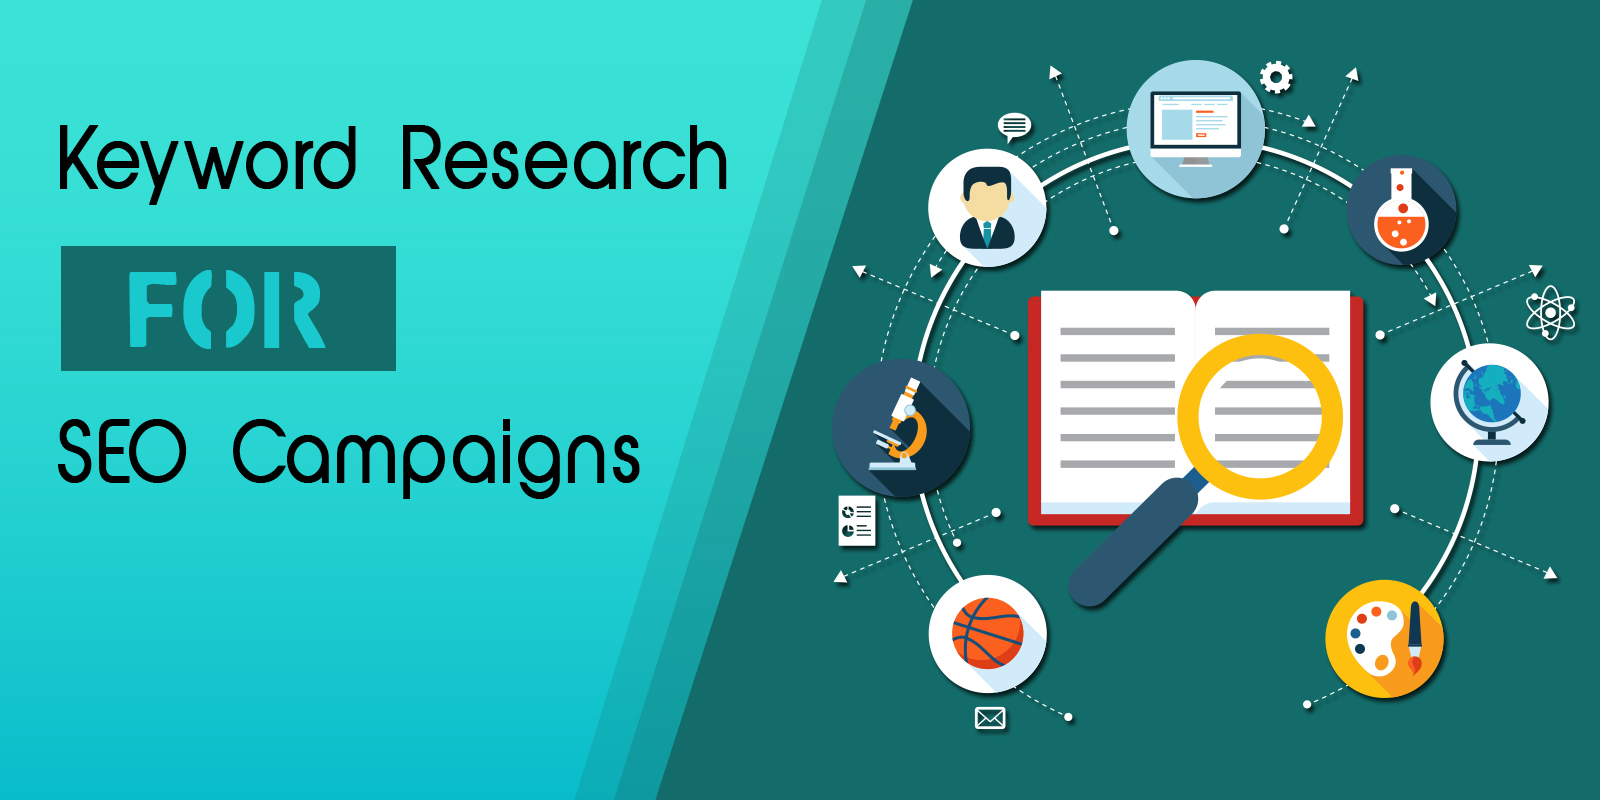 Keyword Research for SEO Campaigns